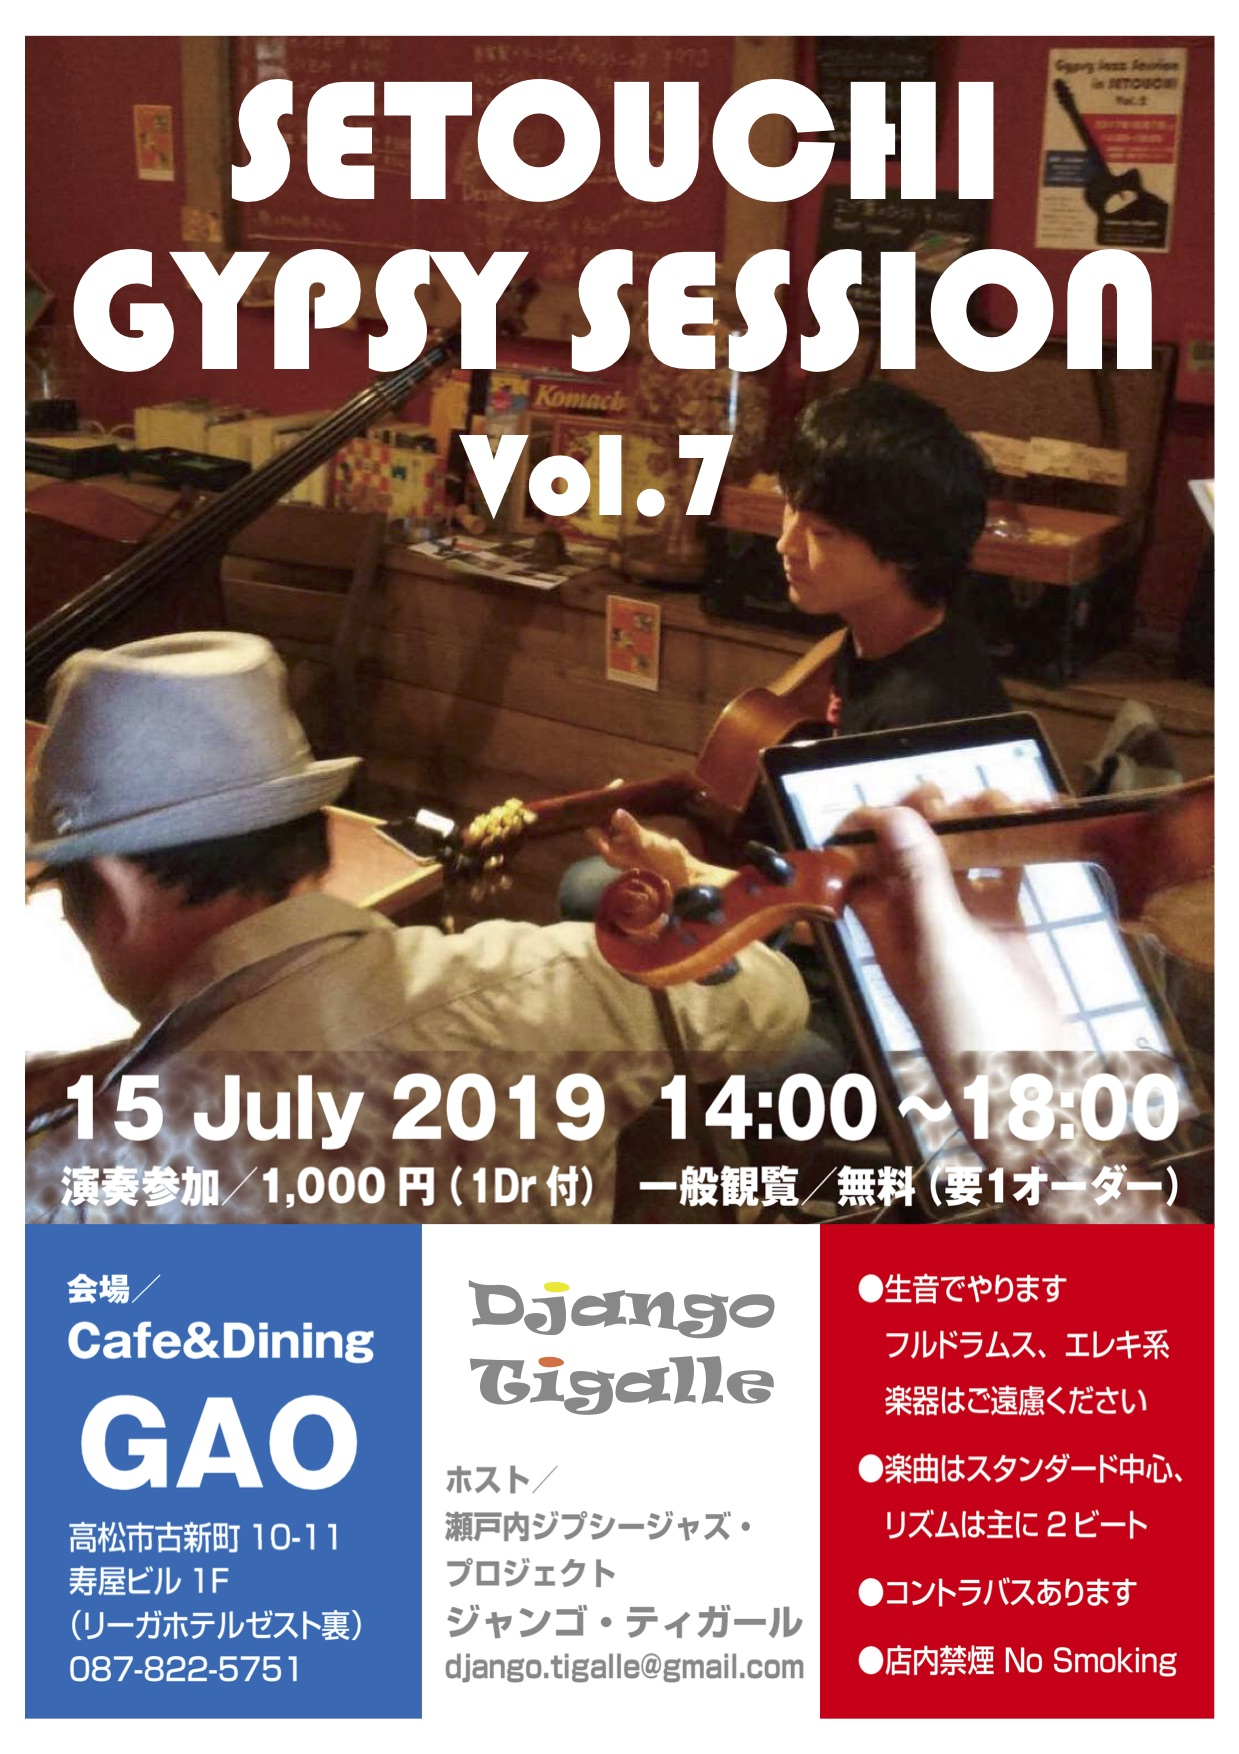 gypsy session